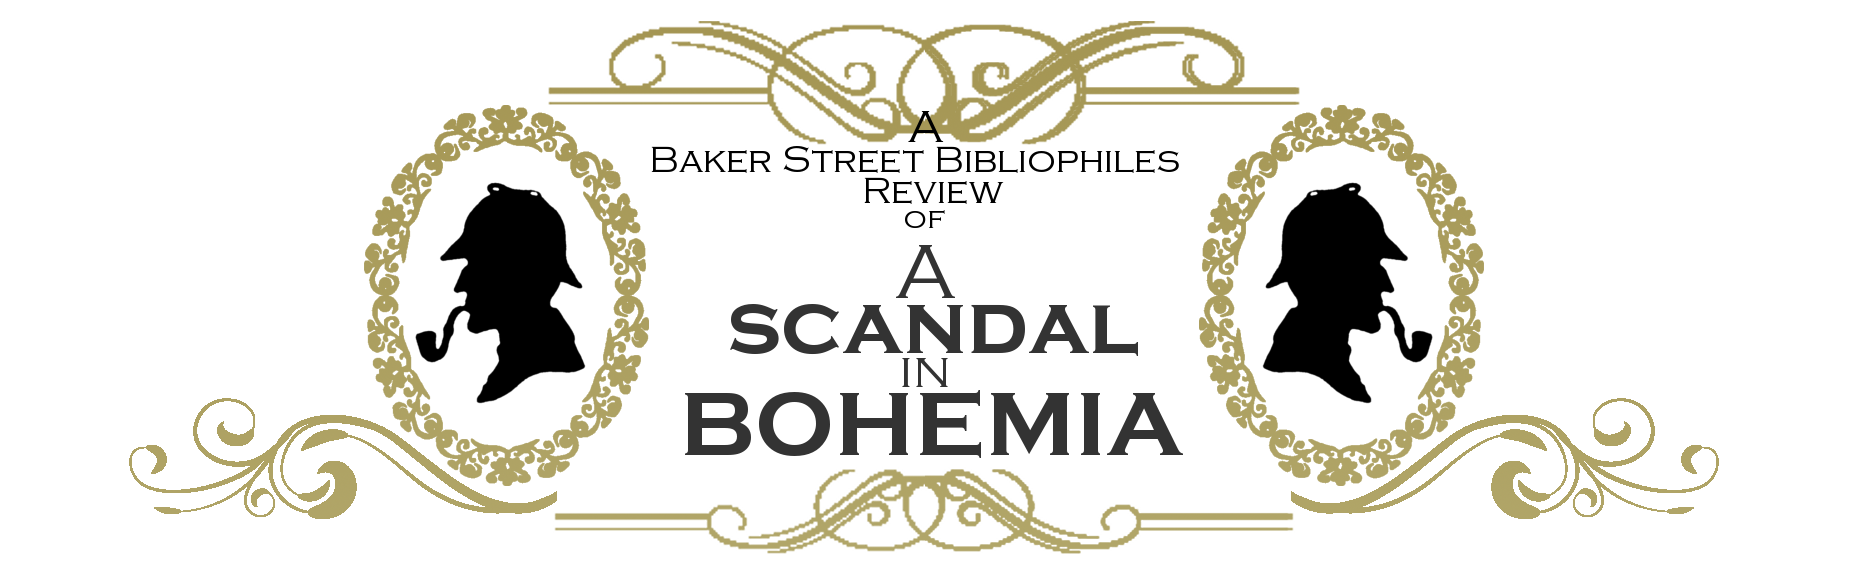 A Scandal in Bohemia Review Template by BradyMajor on DeviantArt